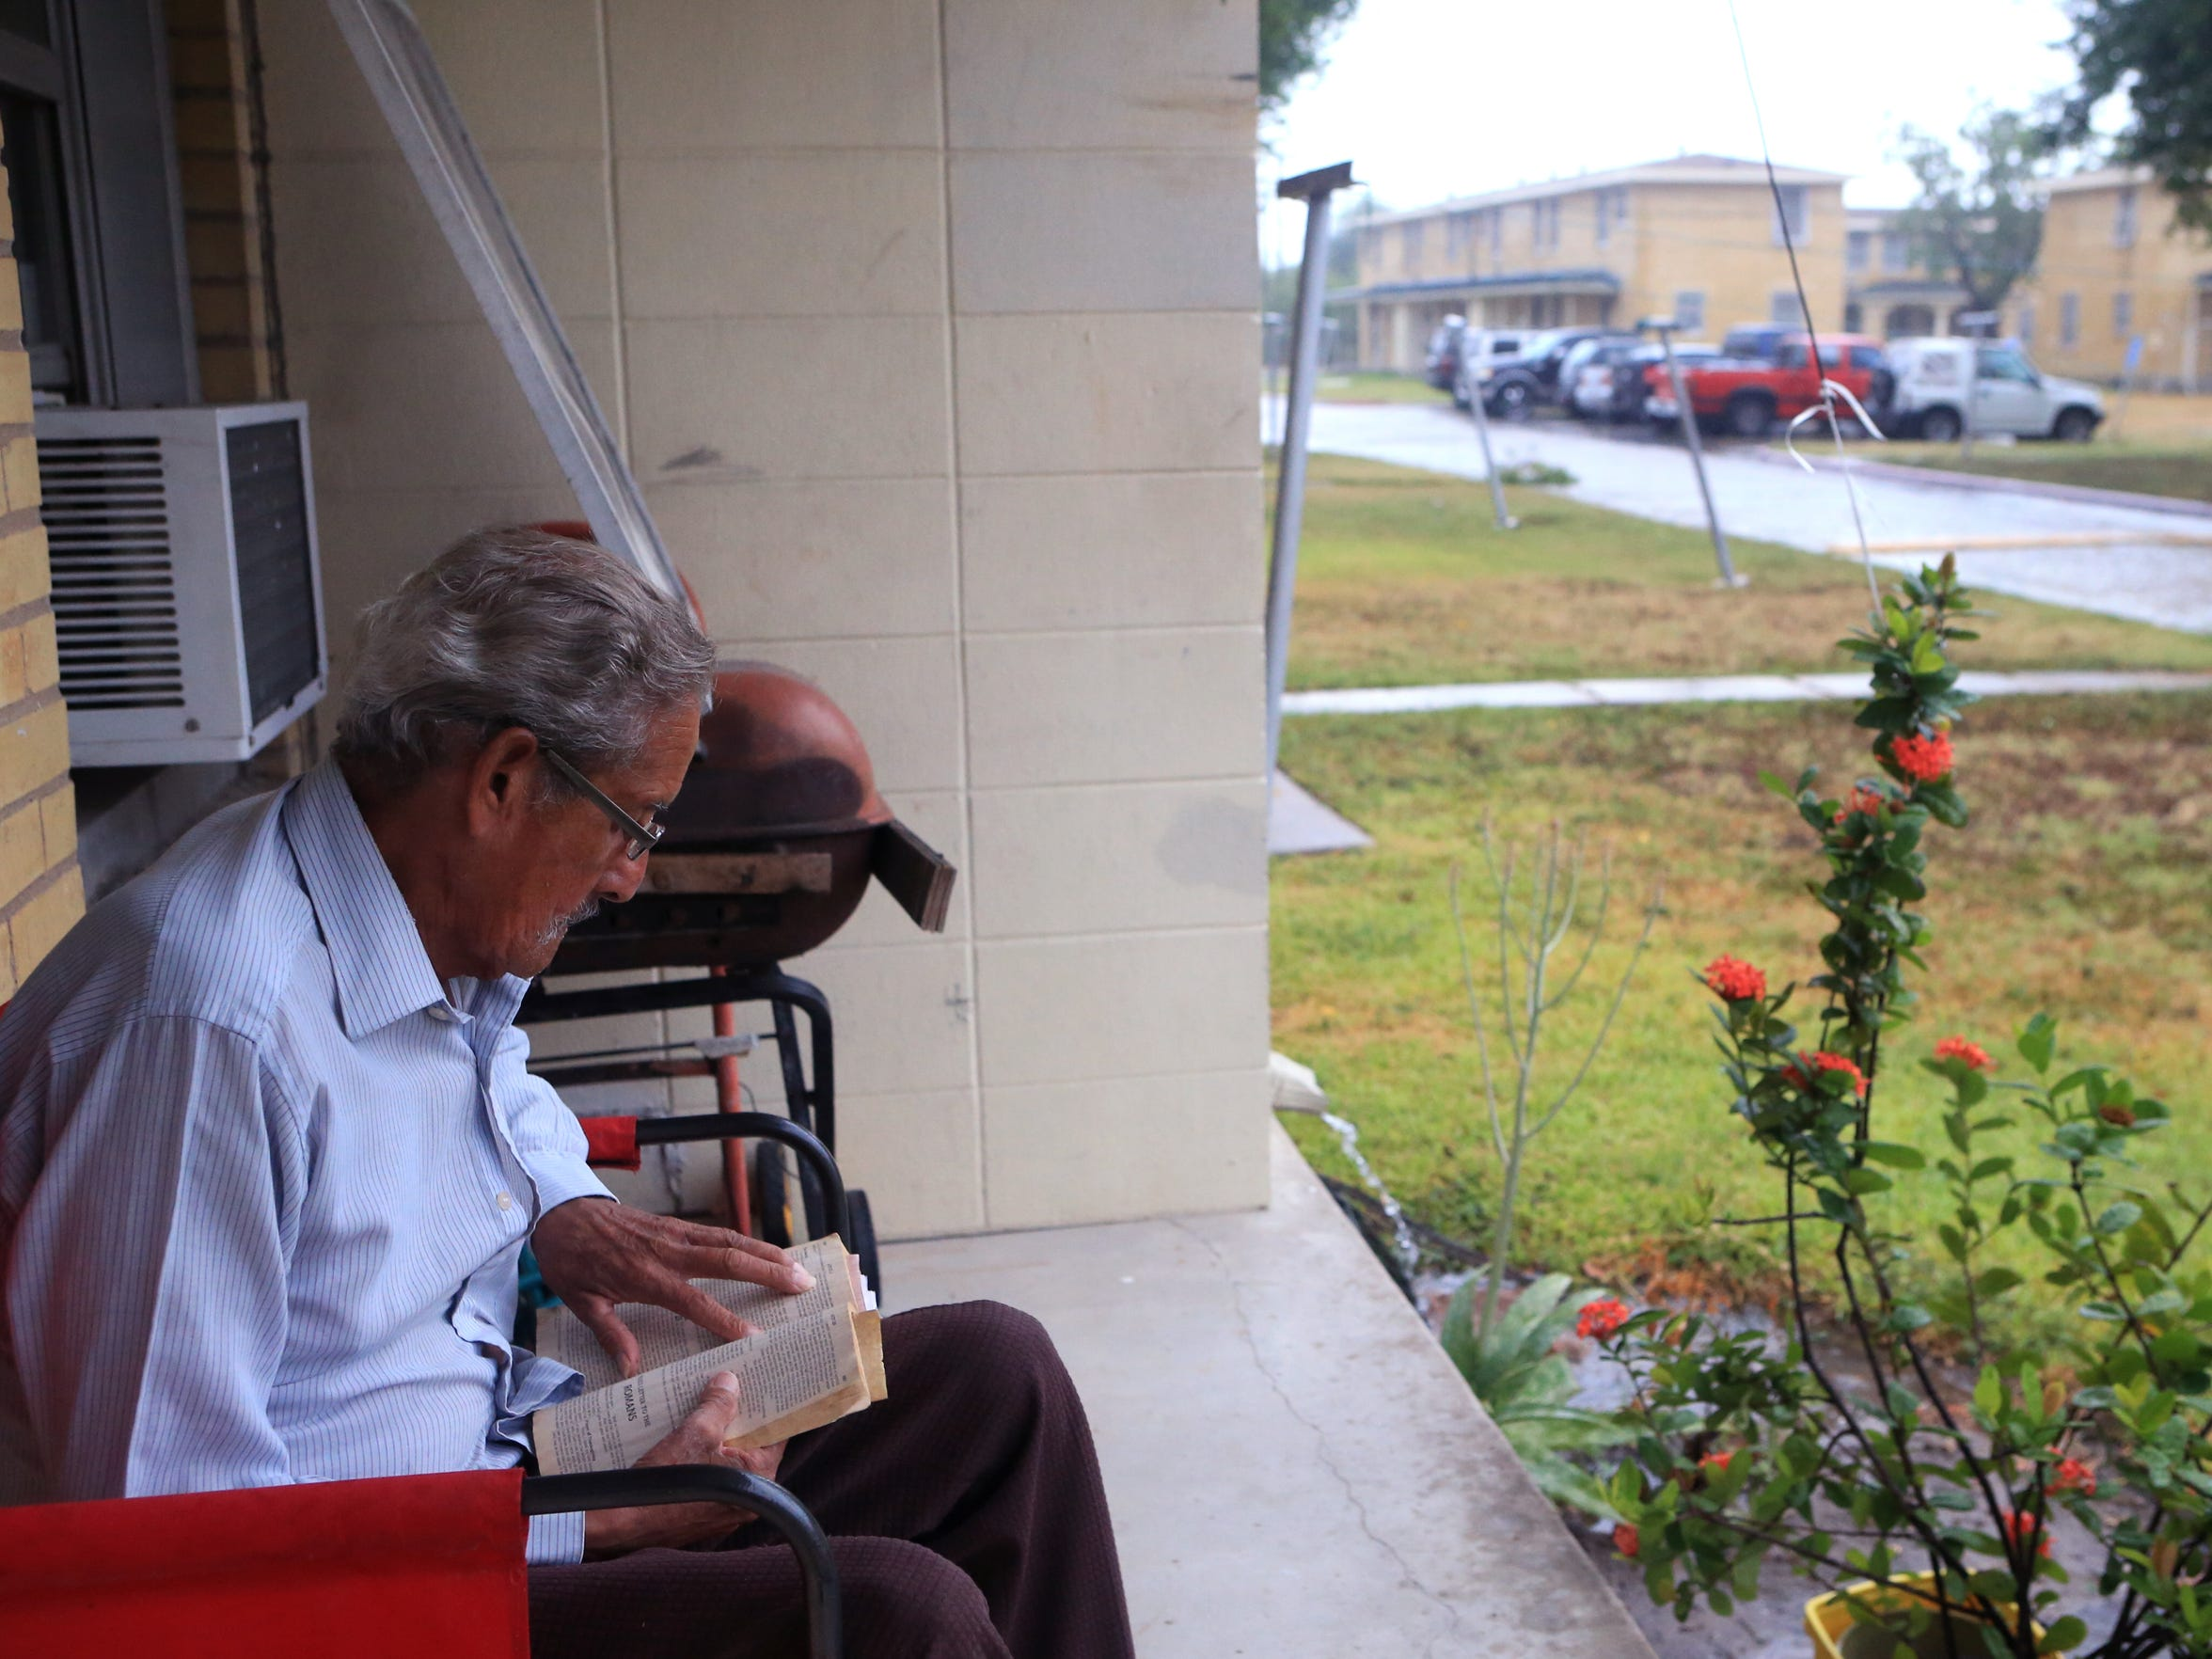 Joe Matay reads the Bible as he sits on the front porch